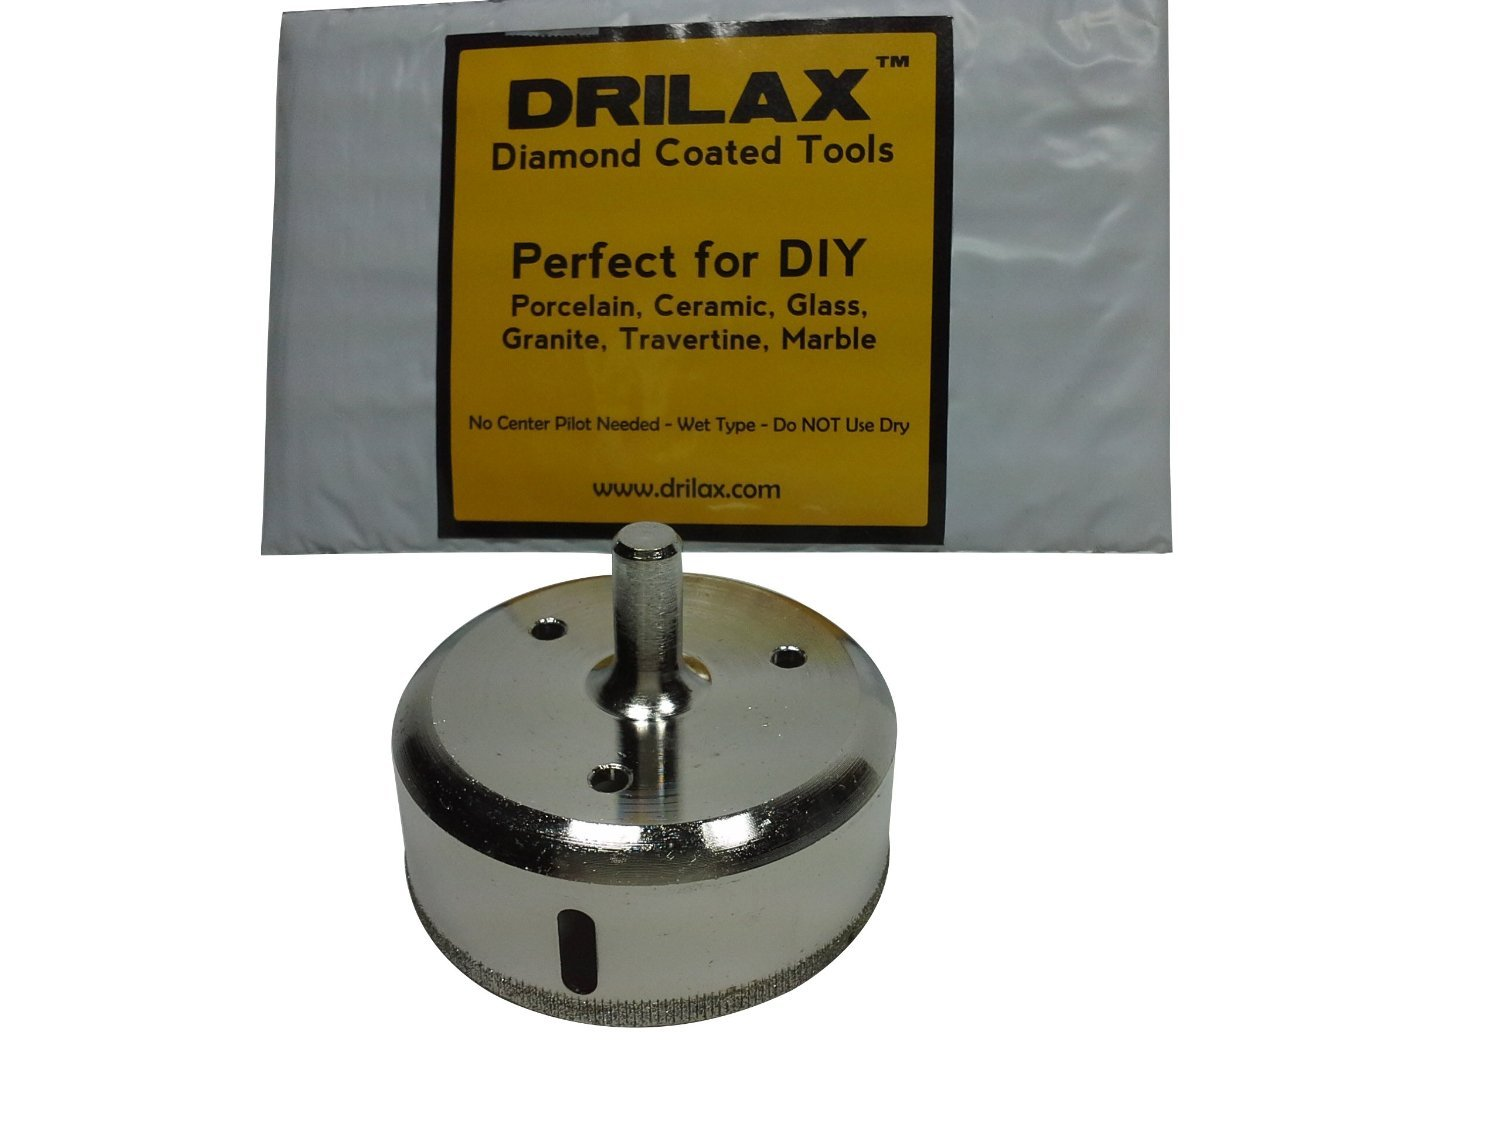 Amazon drilax 3 18 diamond drill bit hole saw ceramic amazon drilax 3 18 diamond drill bit hole saw ceramic porcelain tile glass marble granite quartz cutting coated circular saw tip wet drilling core dailygadgetfo Gallery